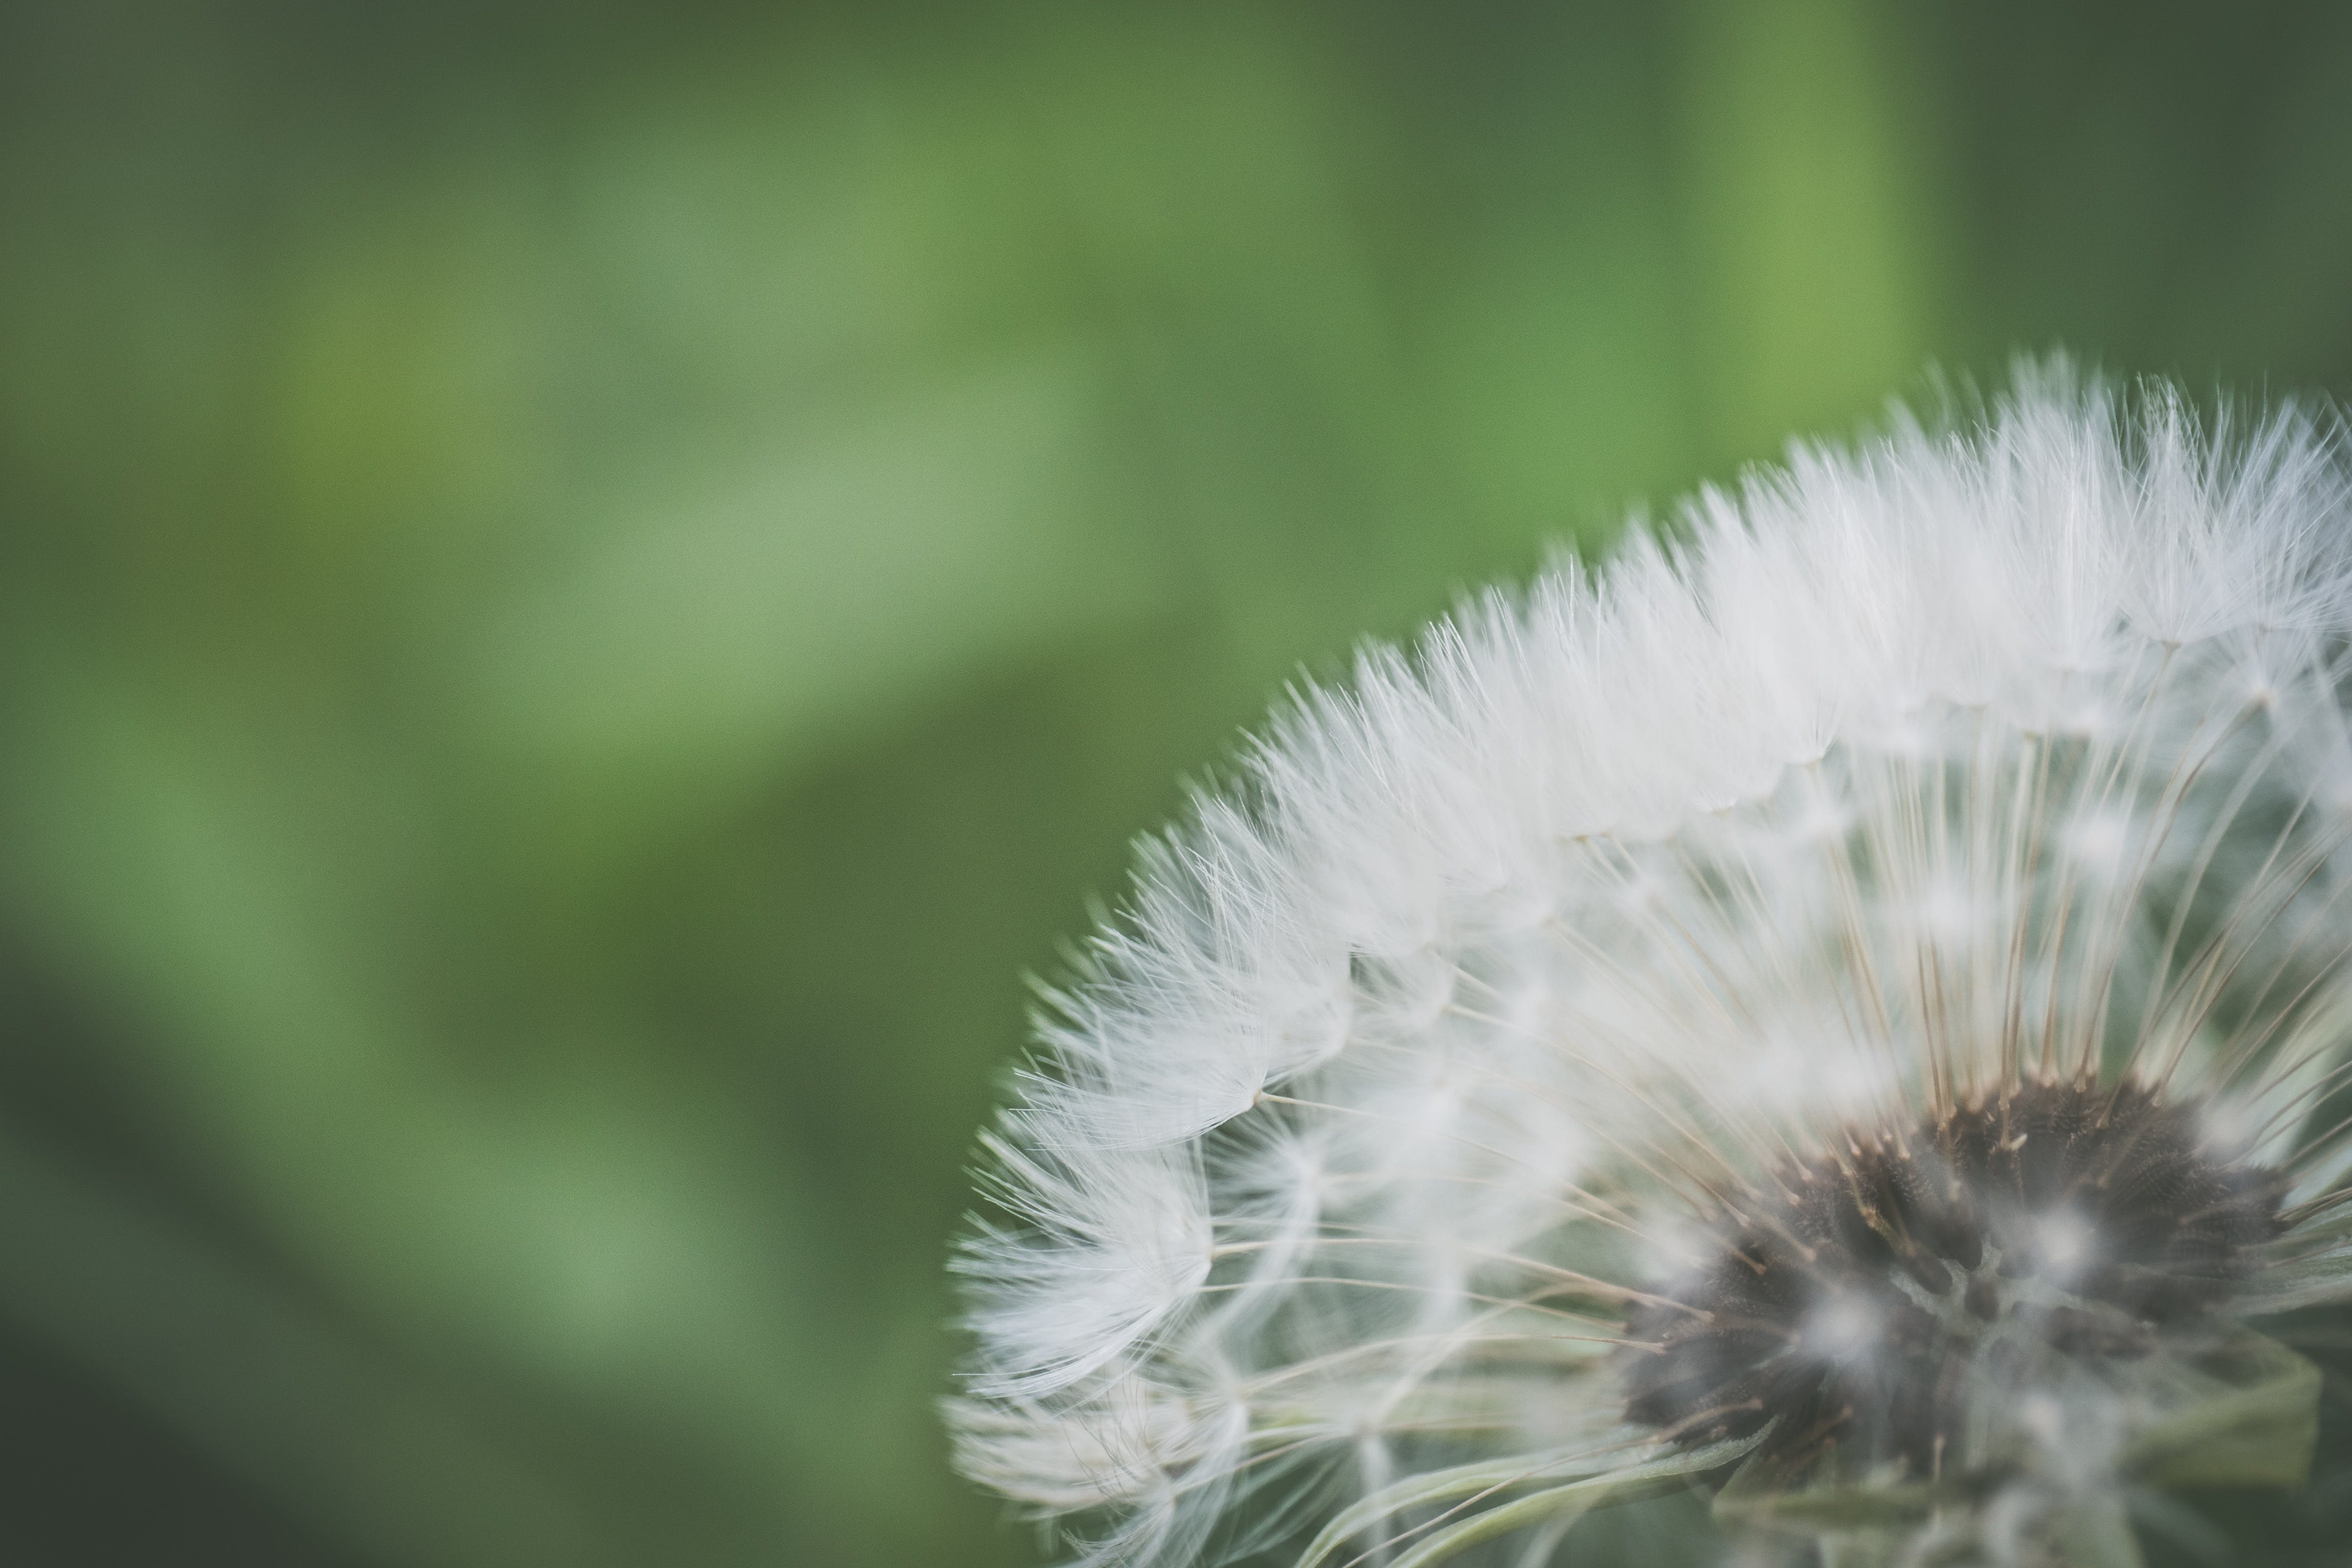 Close Up Photo of White Dandelion